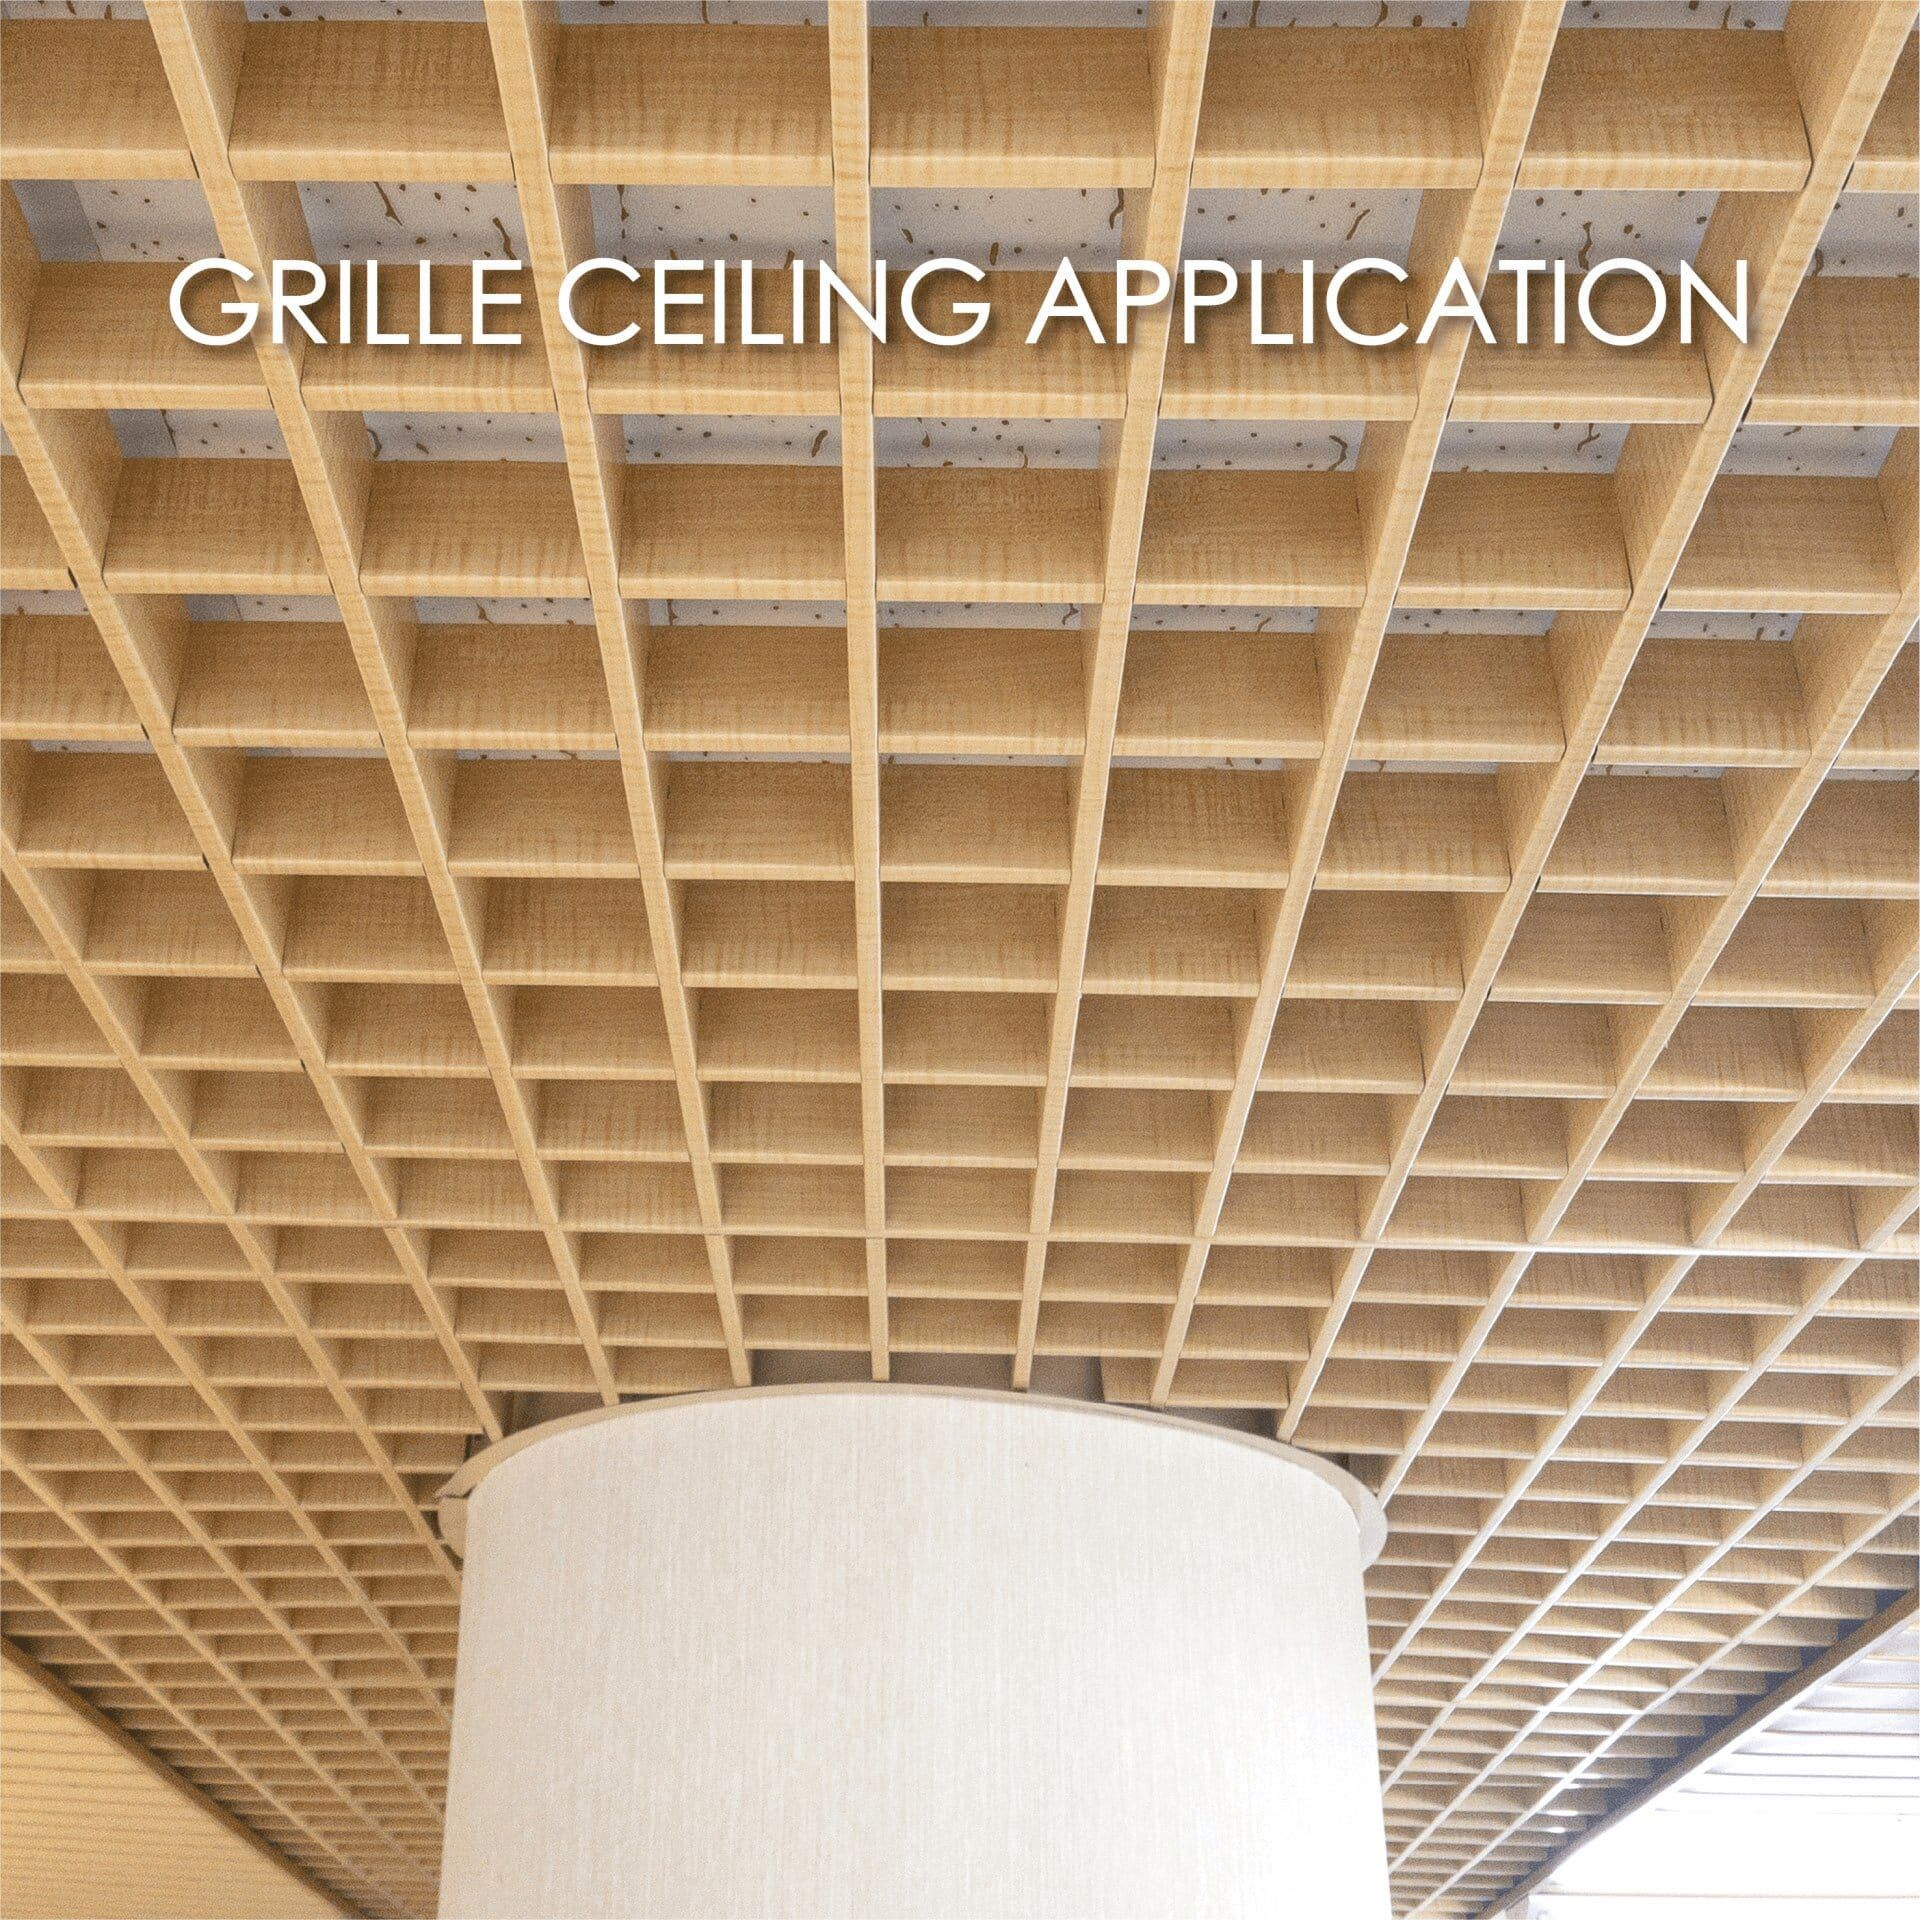 The use of laminated metal for grille ceilings adds decorativeity and durability